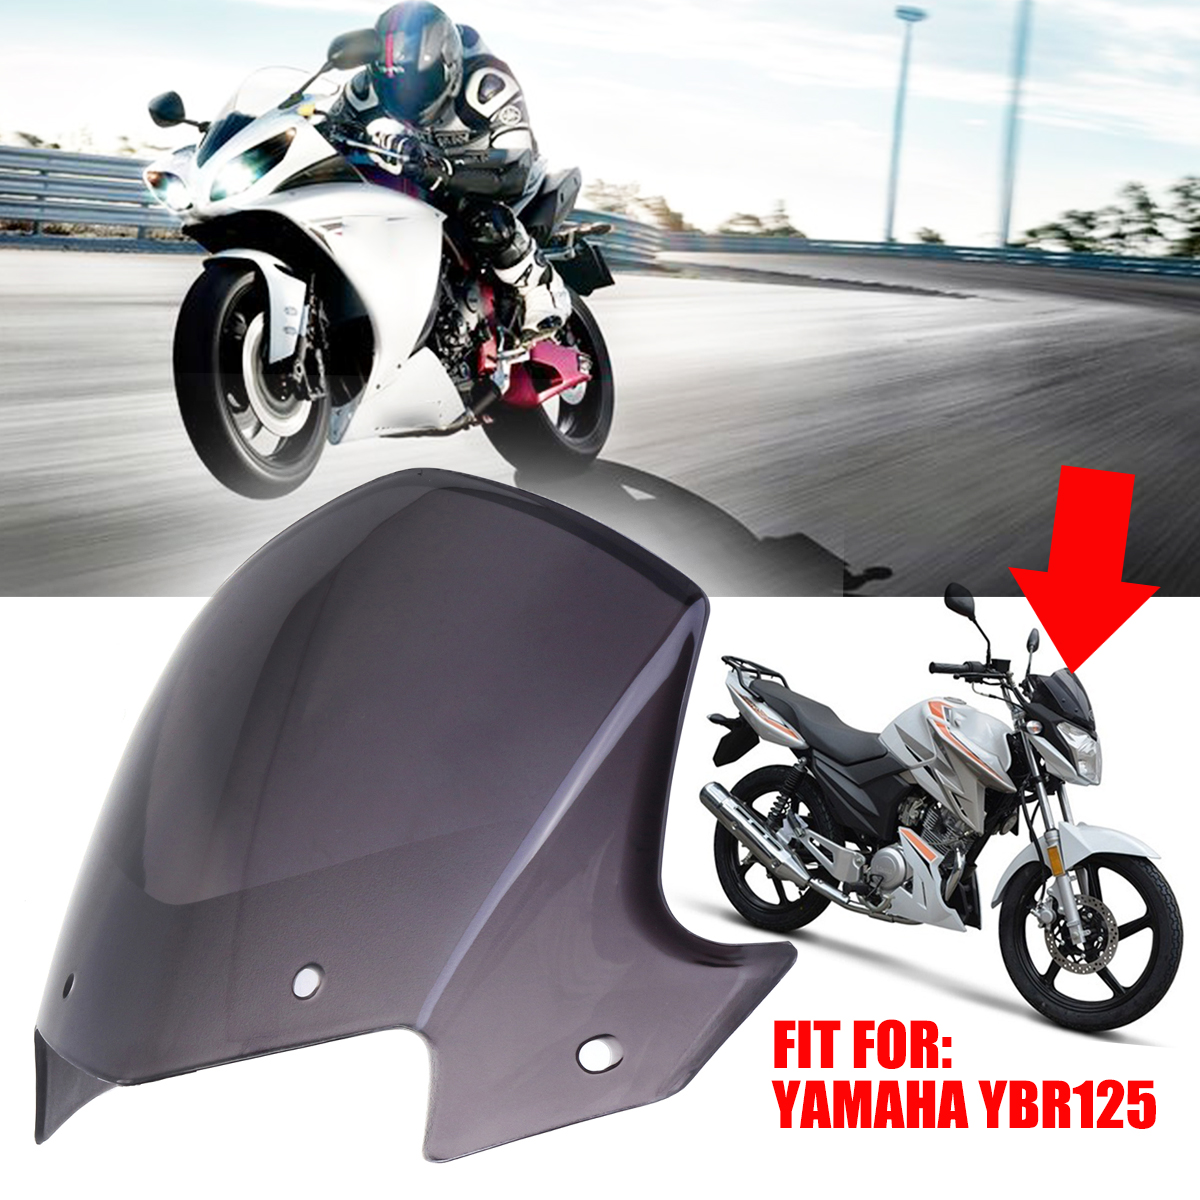 For Yamaha YBR 125 Headlight Fairing Wind Shield Screen With Accessories Transparent Brown Motor Windshield Screen 2014-2017